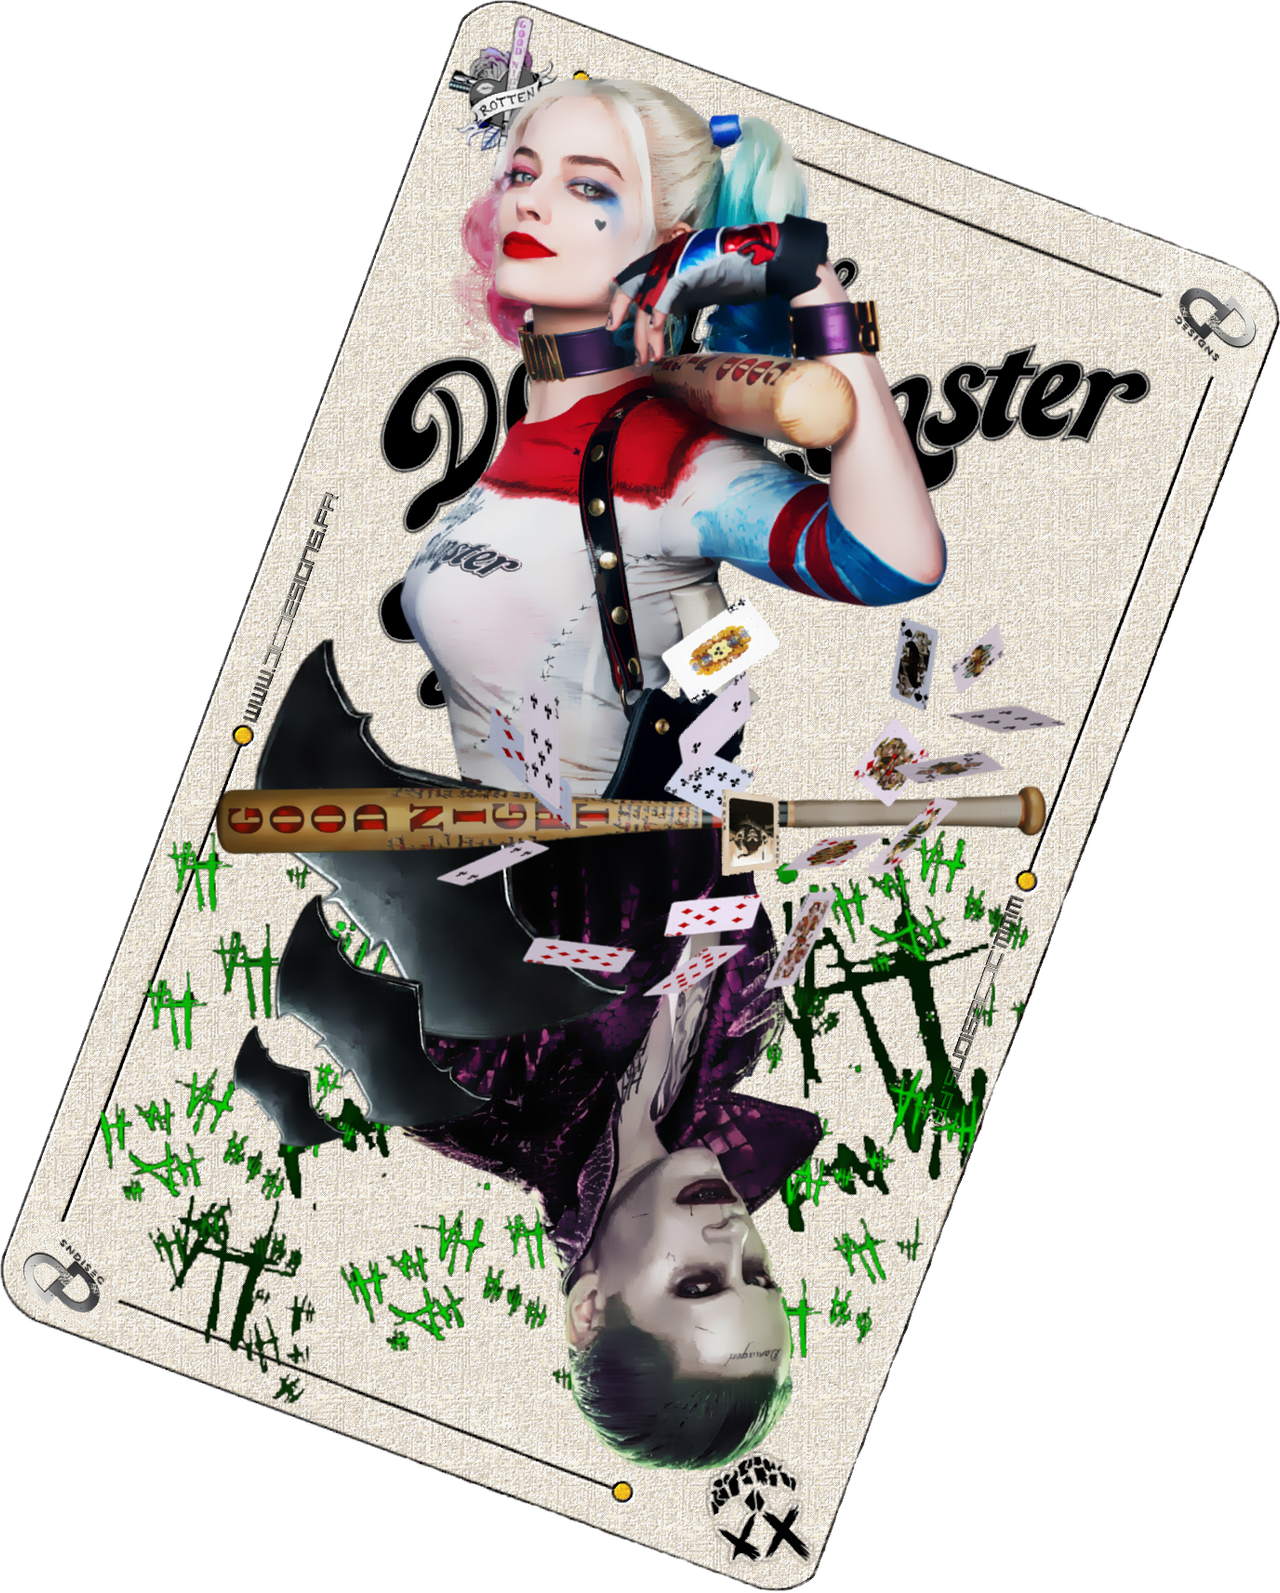 The Joker Card Suicide Squad By Davian Art On Deviantart